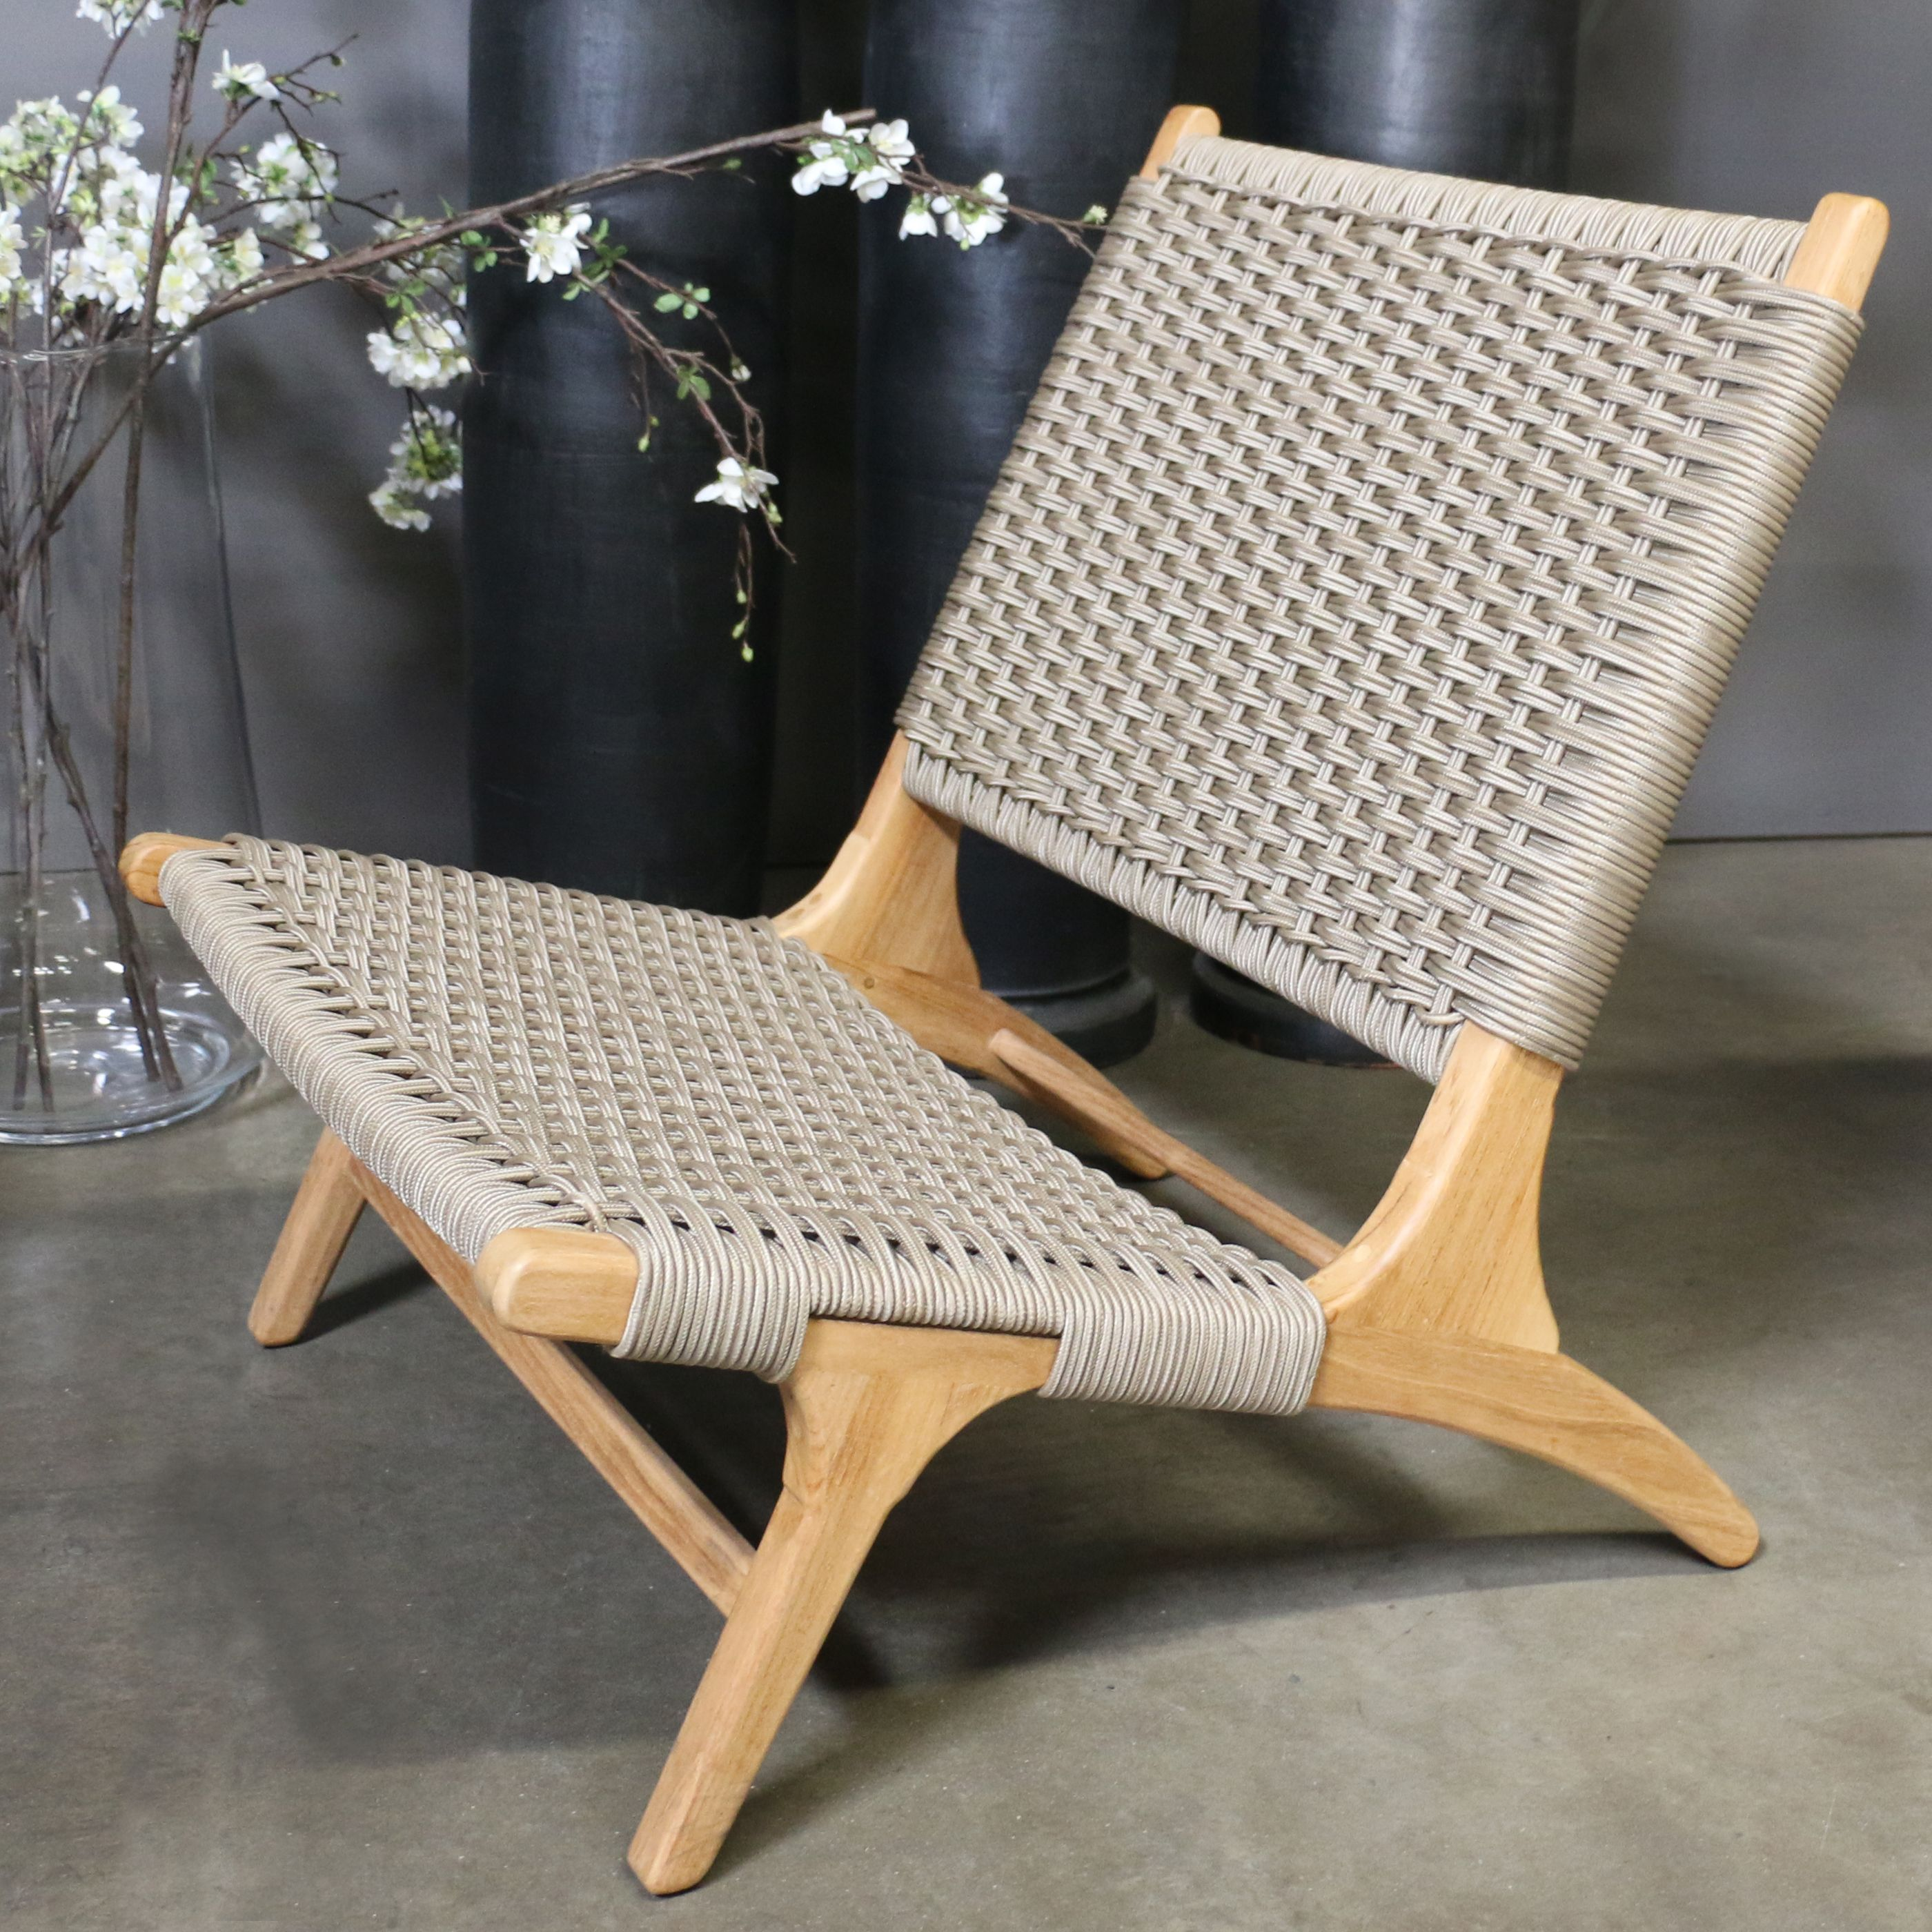 Tokio Teak Rope Chair Relaxing Chair Outdoor Chairs Comfortable Outdoor Chairs